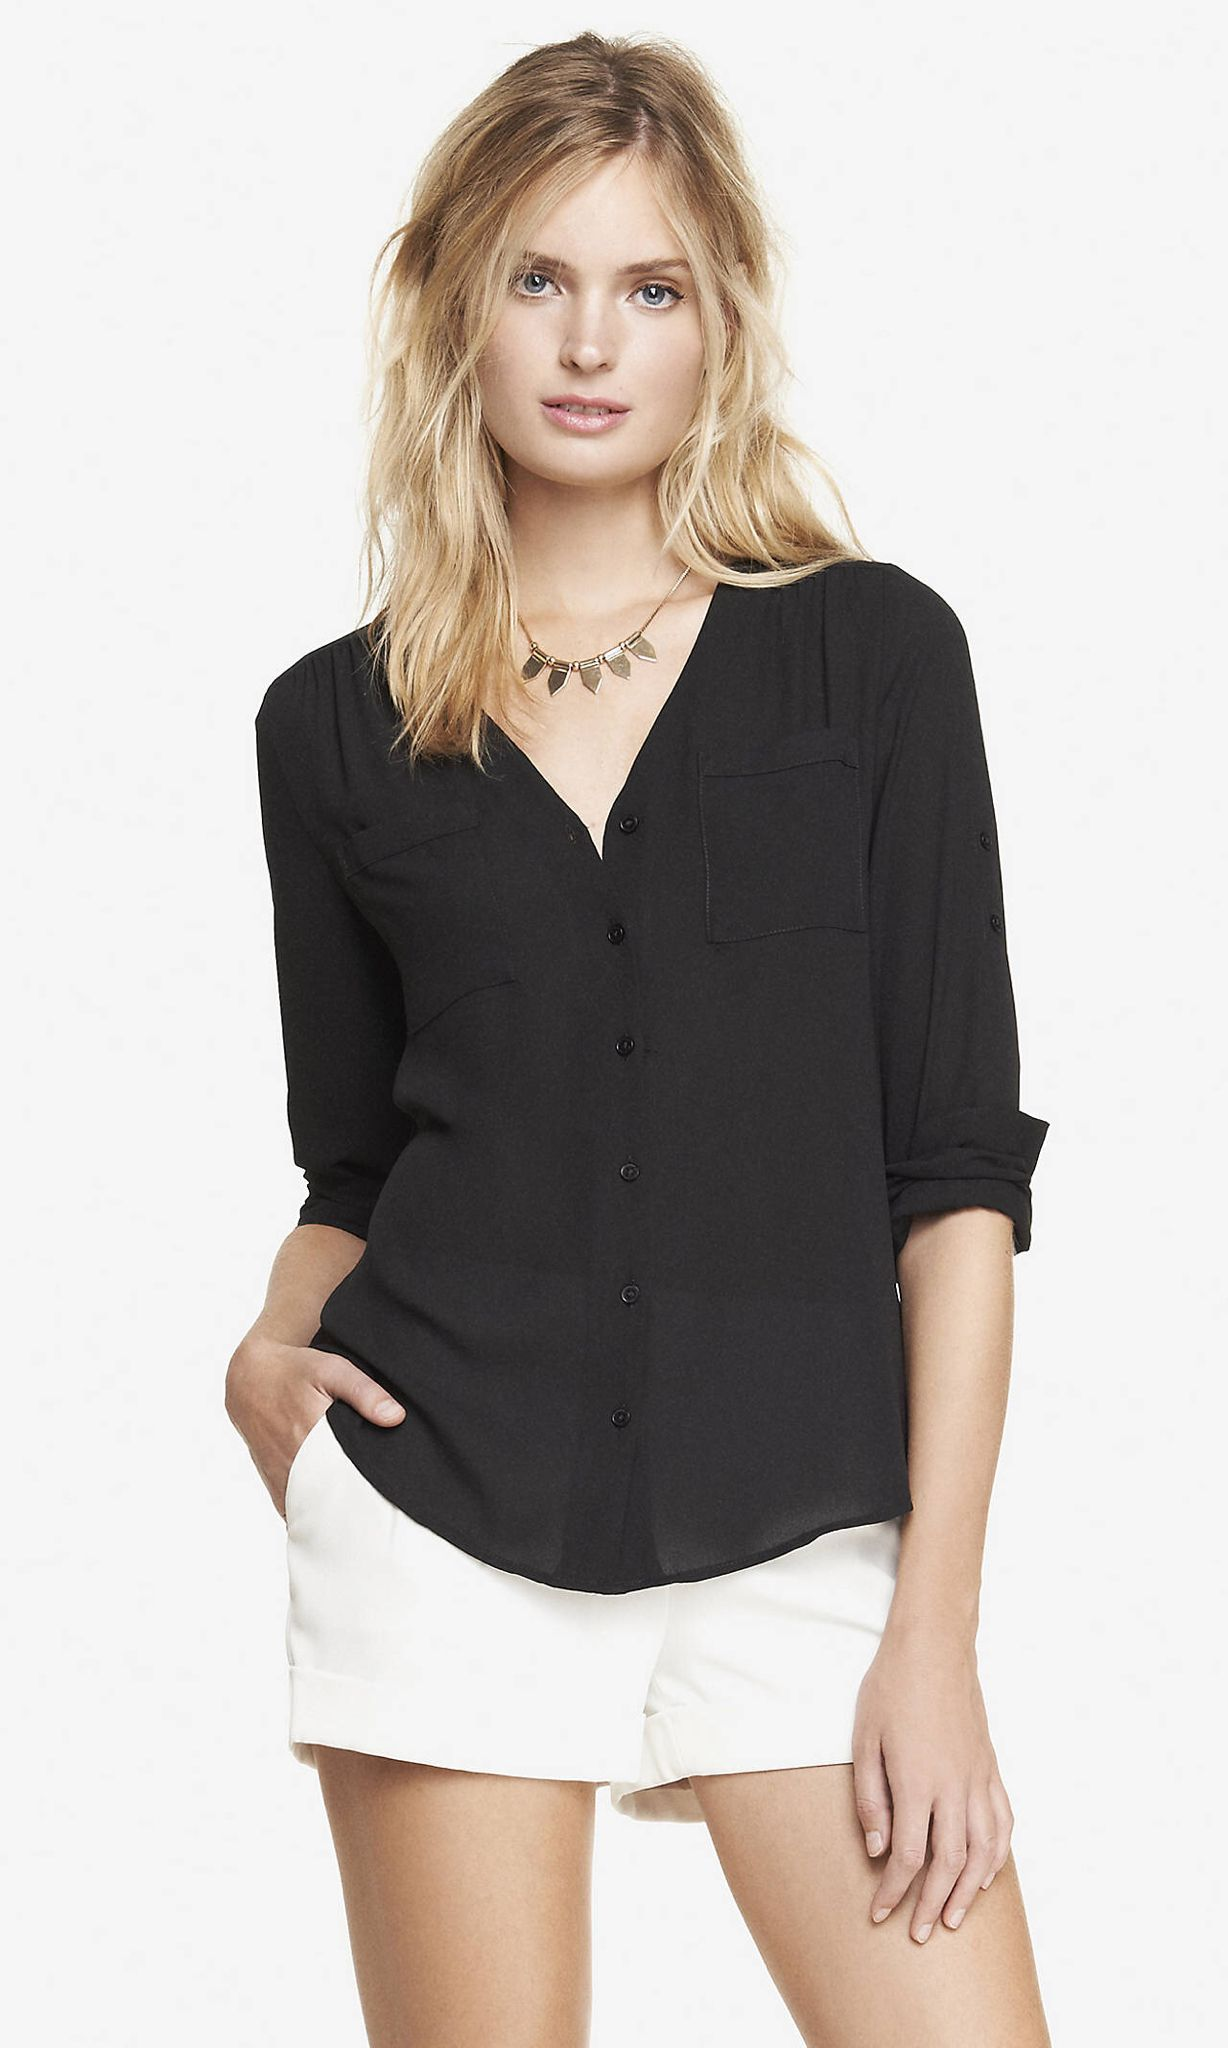 Womens Blouses For Work Express Anlis